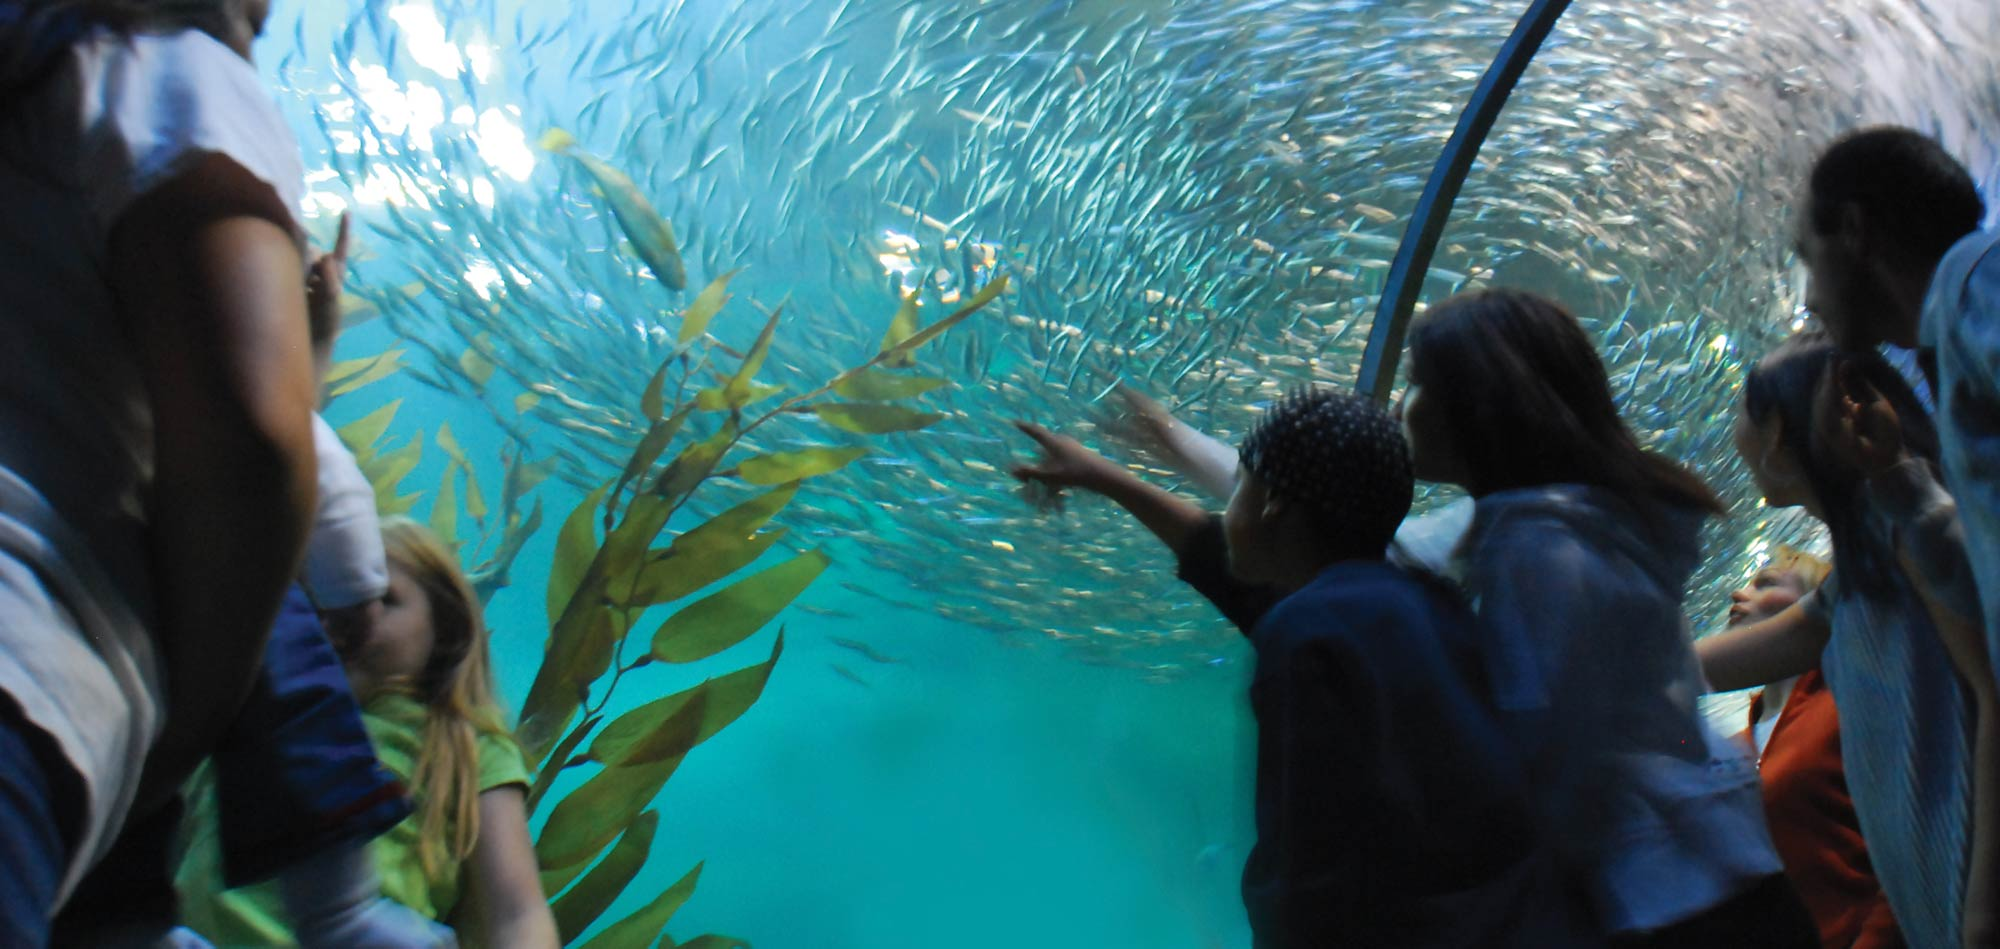 Closest Aquarium | Aquarium Of The Bay Home To More Than 20 000 Marine Animals